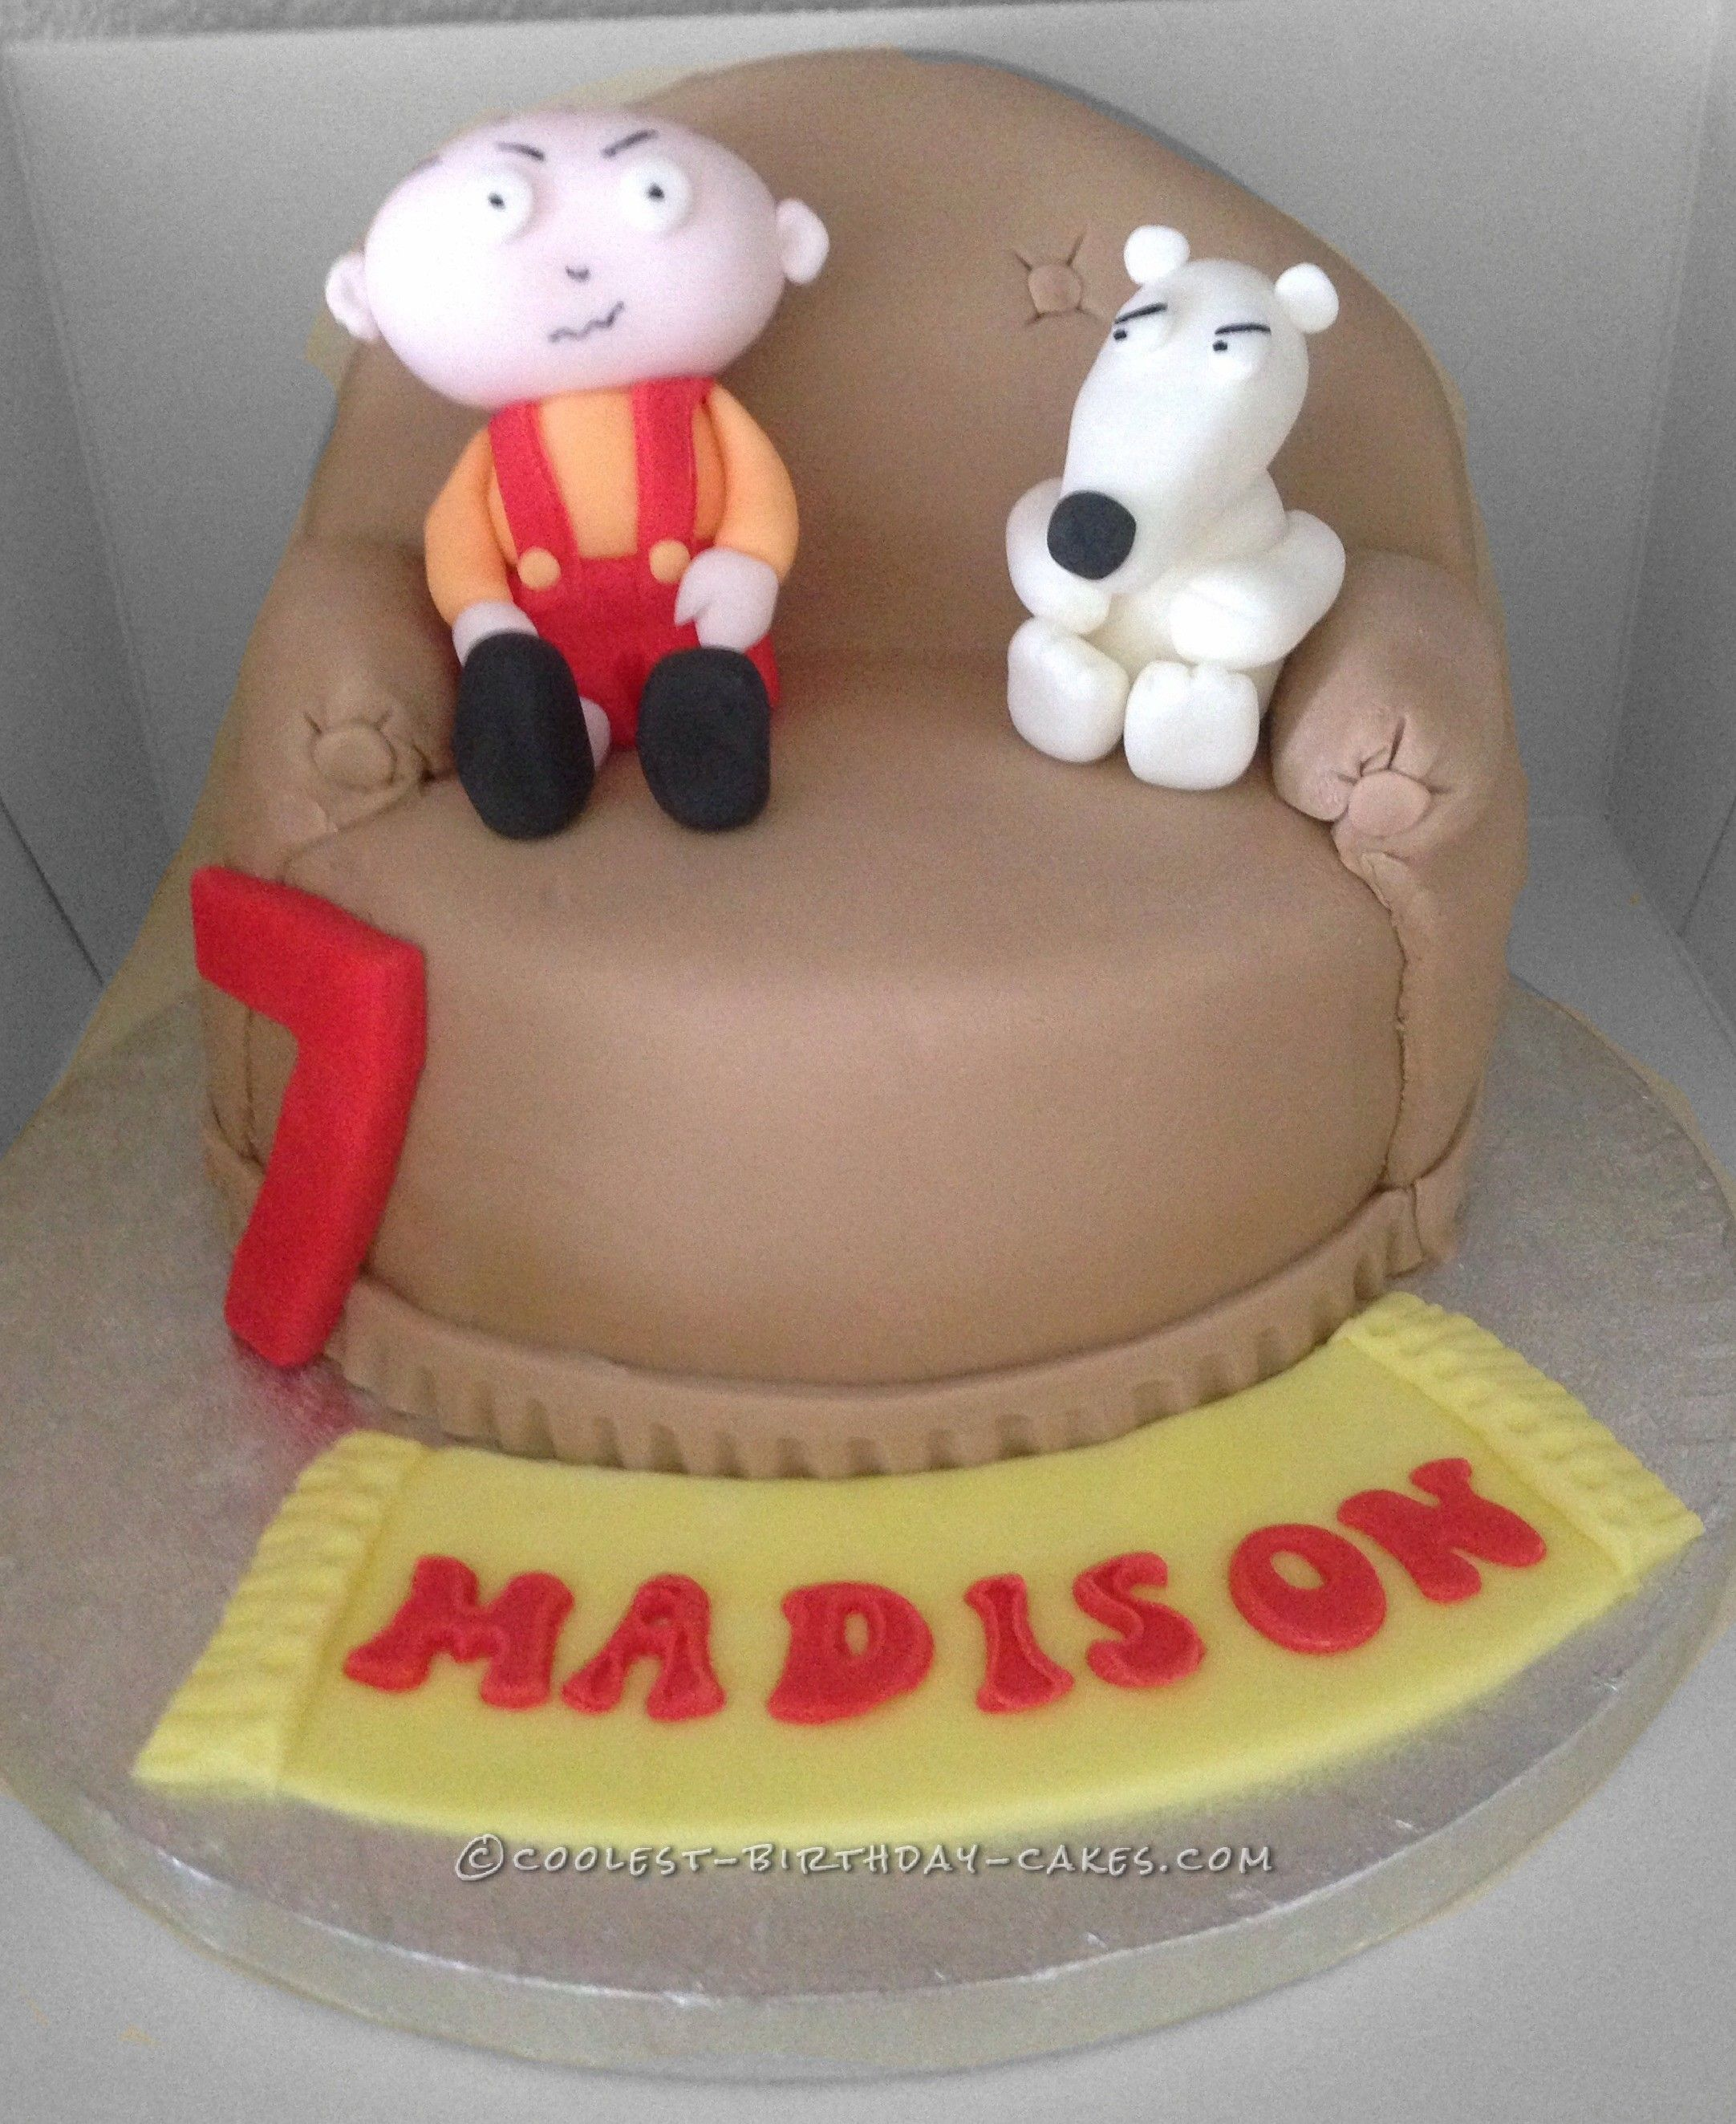 Coolest Family Guy Cake Guy Cakes Birthday Cakes And Cake - Birthday cake for a guy